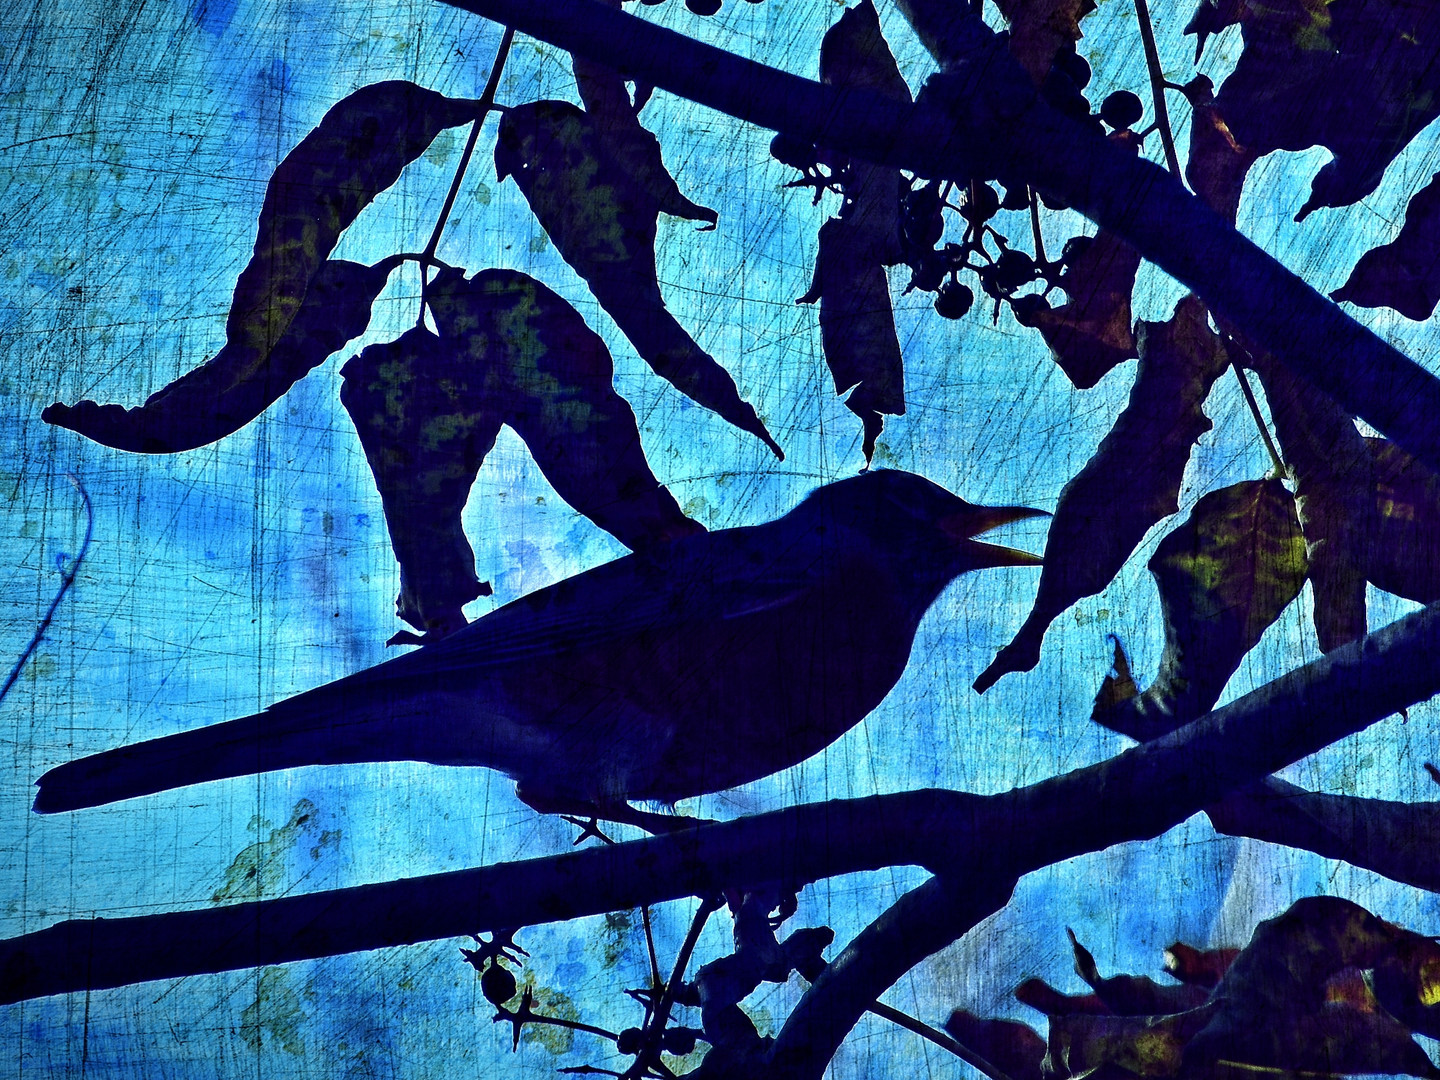 Talking Robin Silhouette